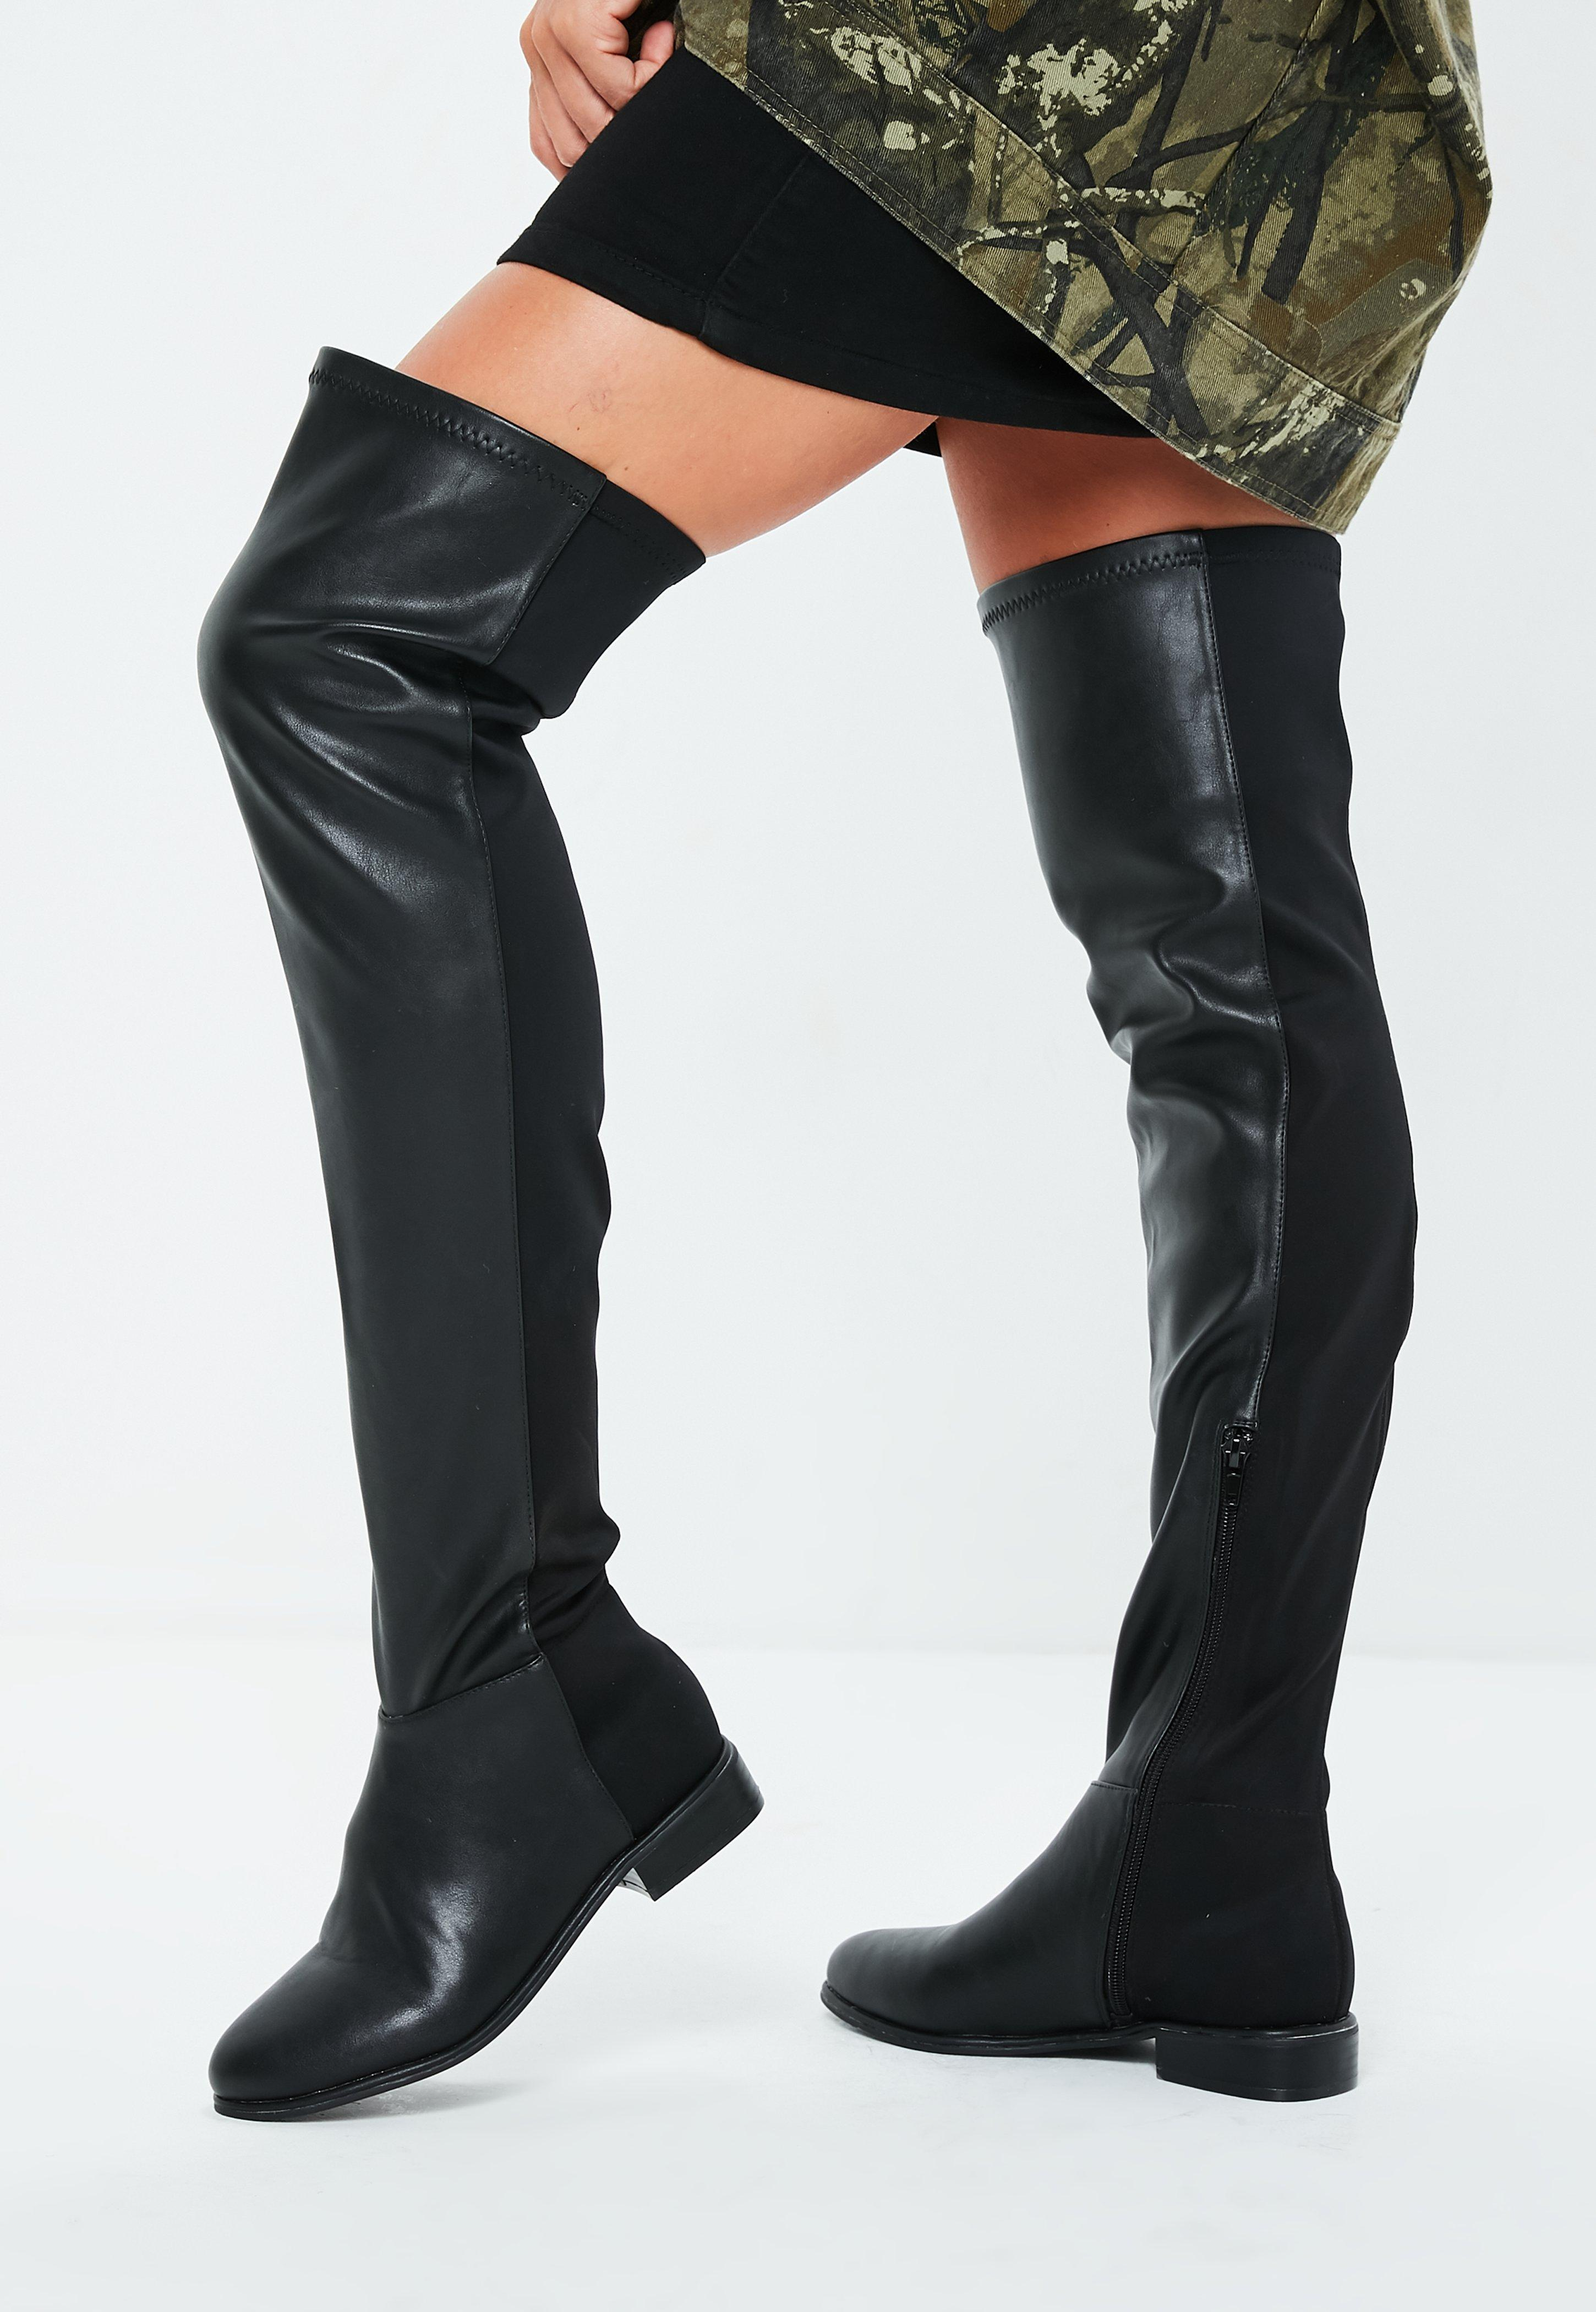 5e419b495b1 Missguided Black Faux Leather Flat Over The Knee Boots in Black - Lyst